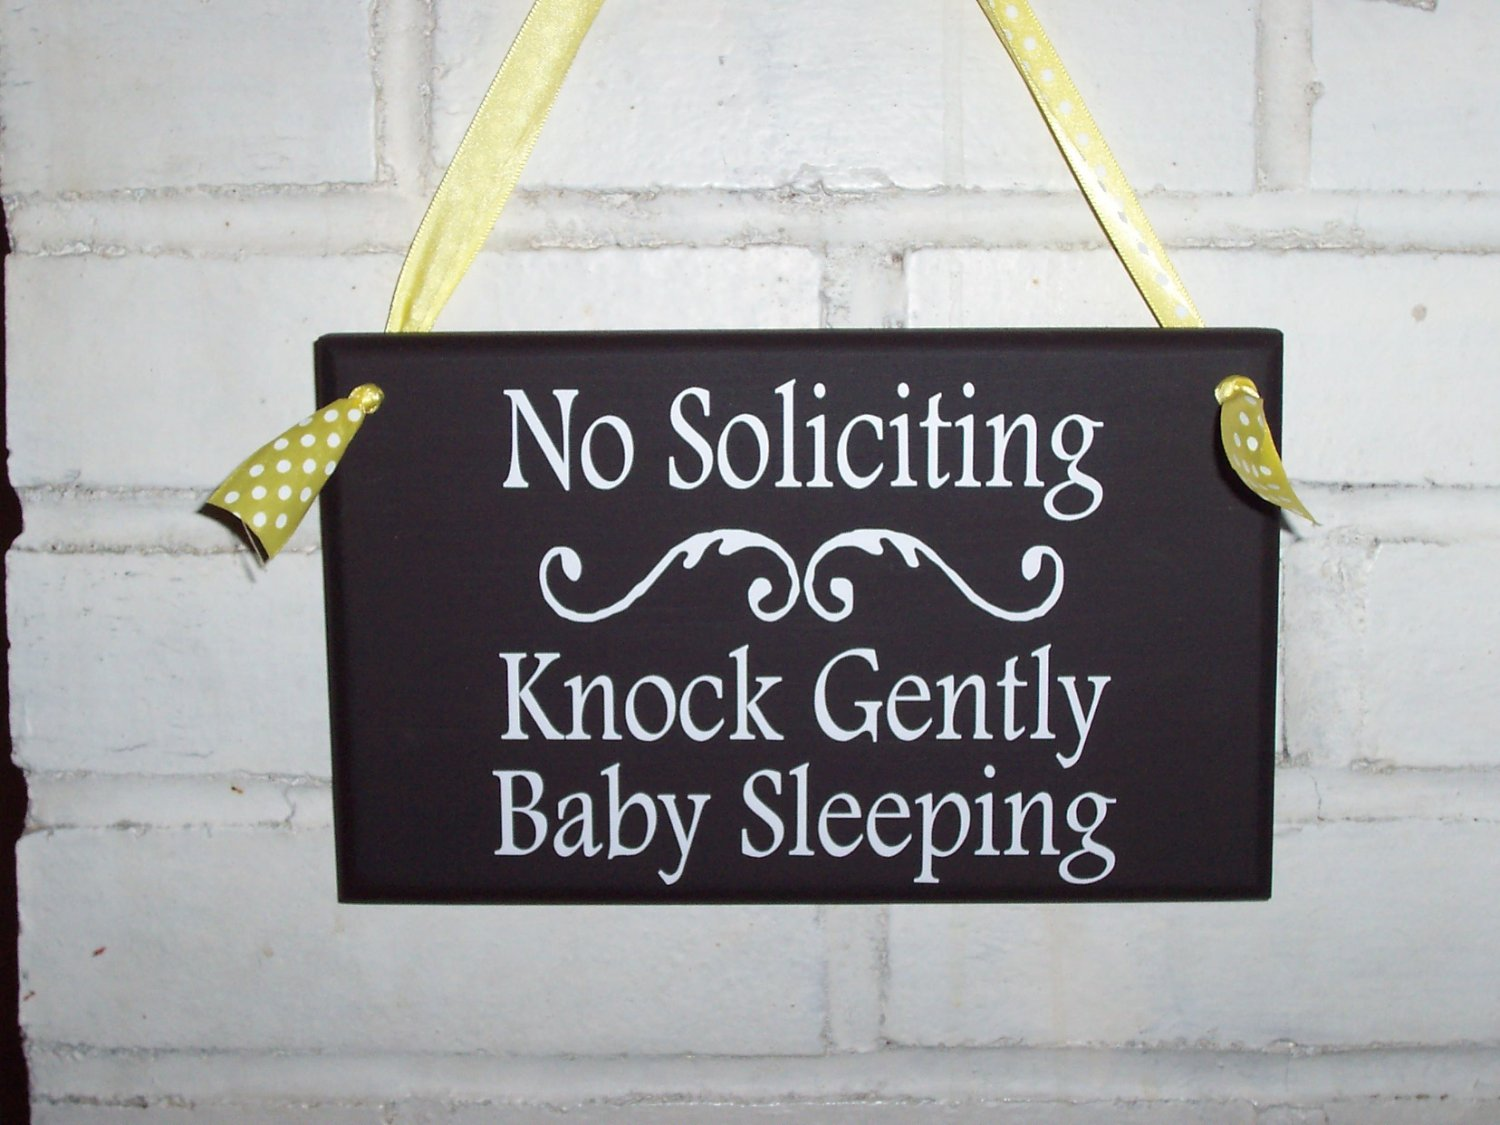 No Soliciting Knock Gently Baby Sleeping Wood Vinyl Sign - Wreath Door Hanger Home Decor